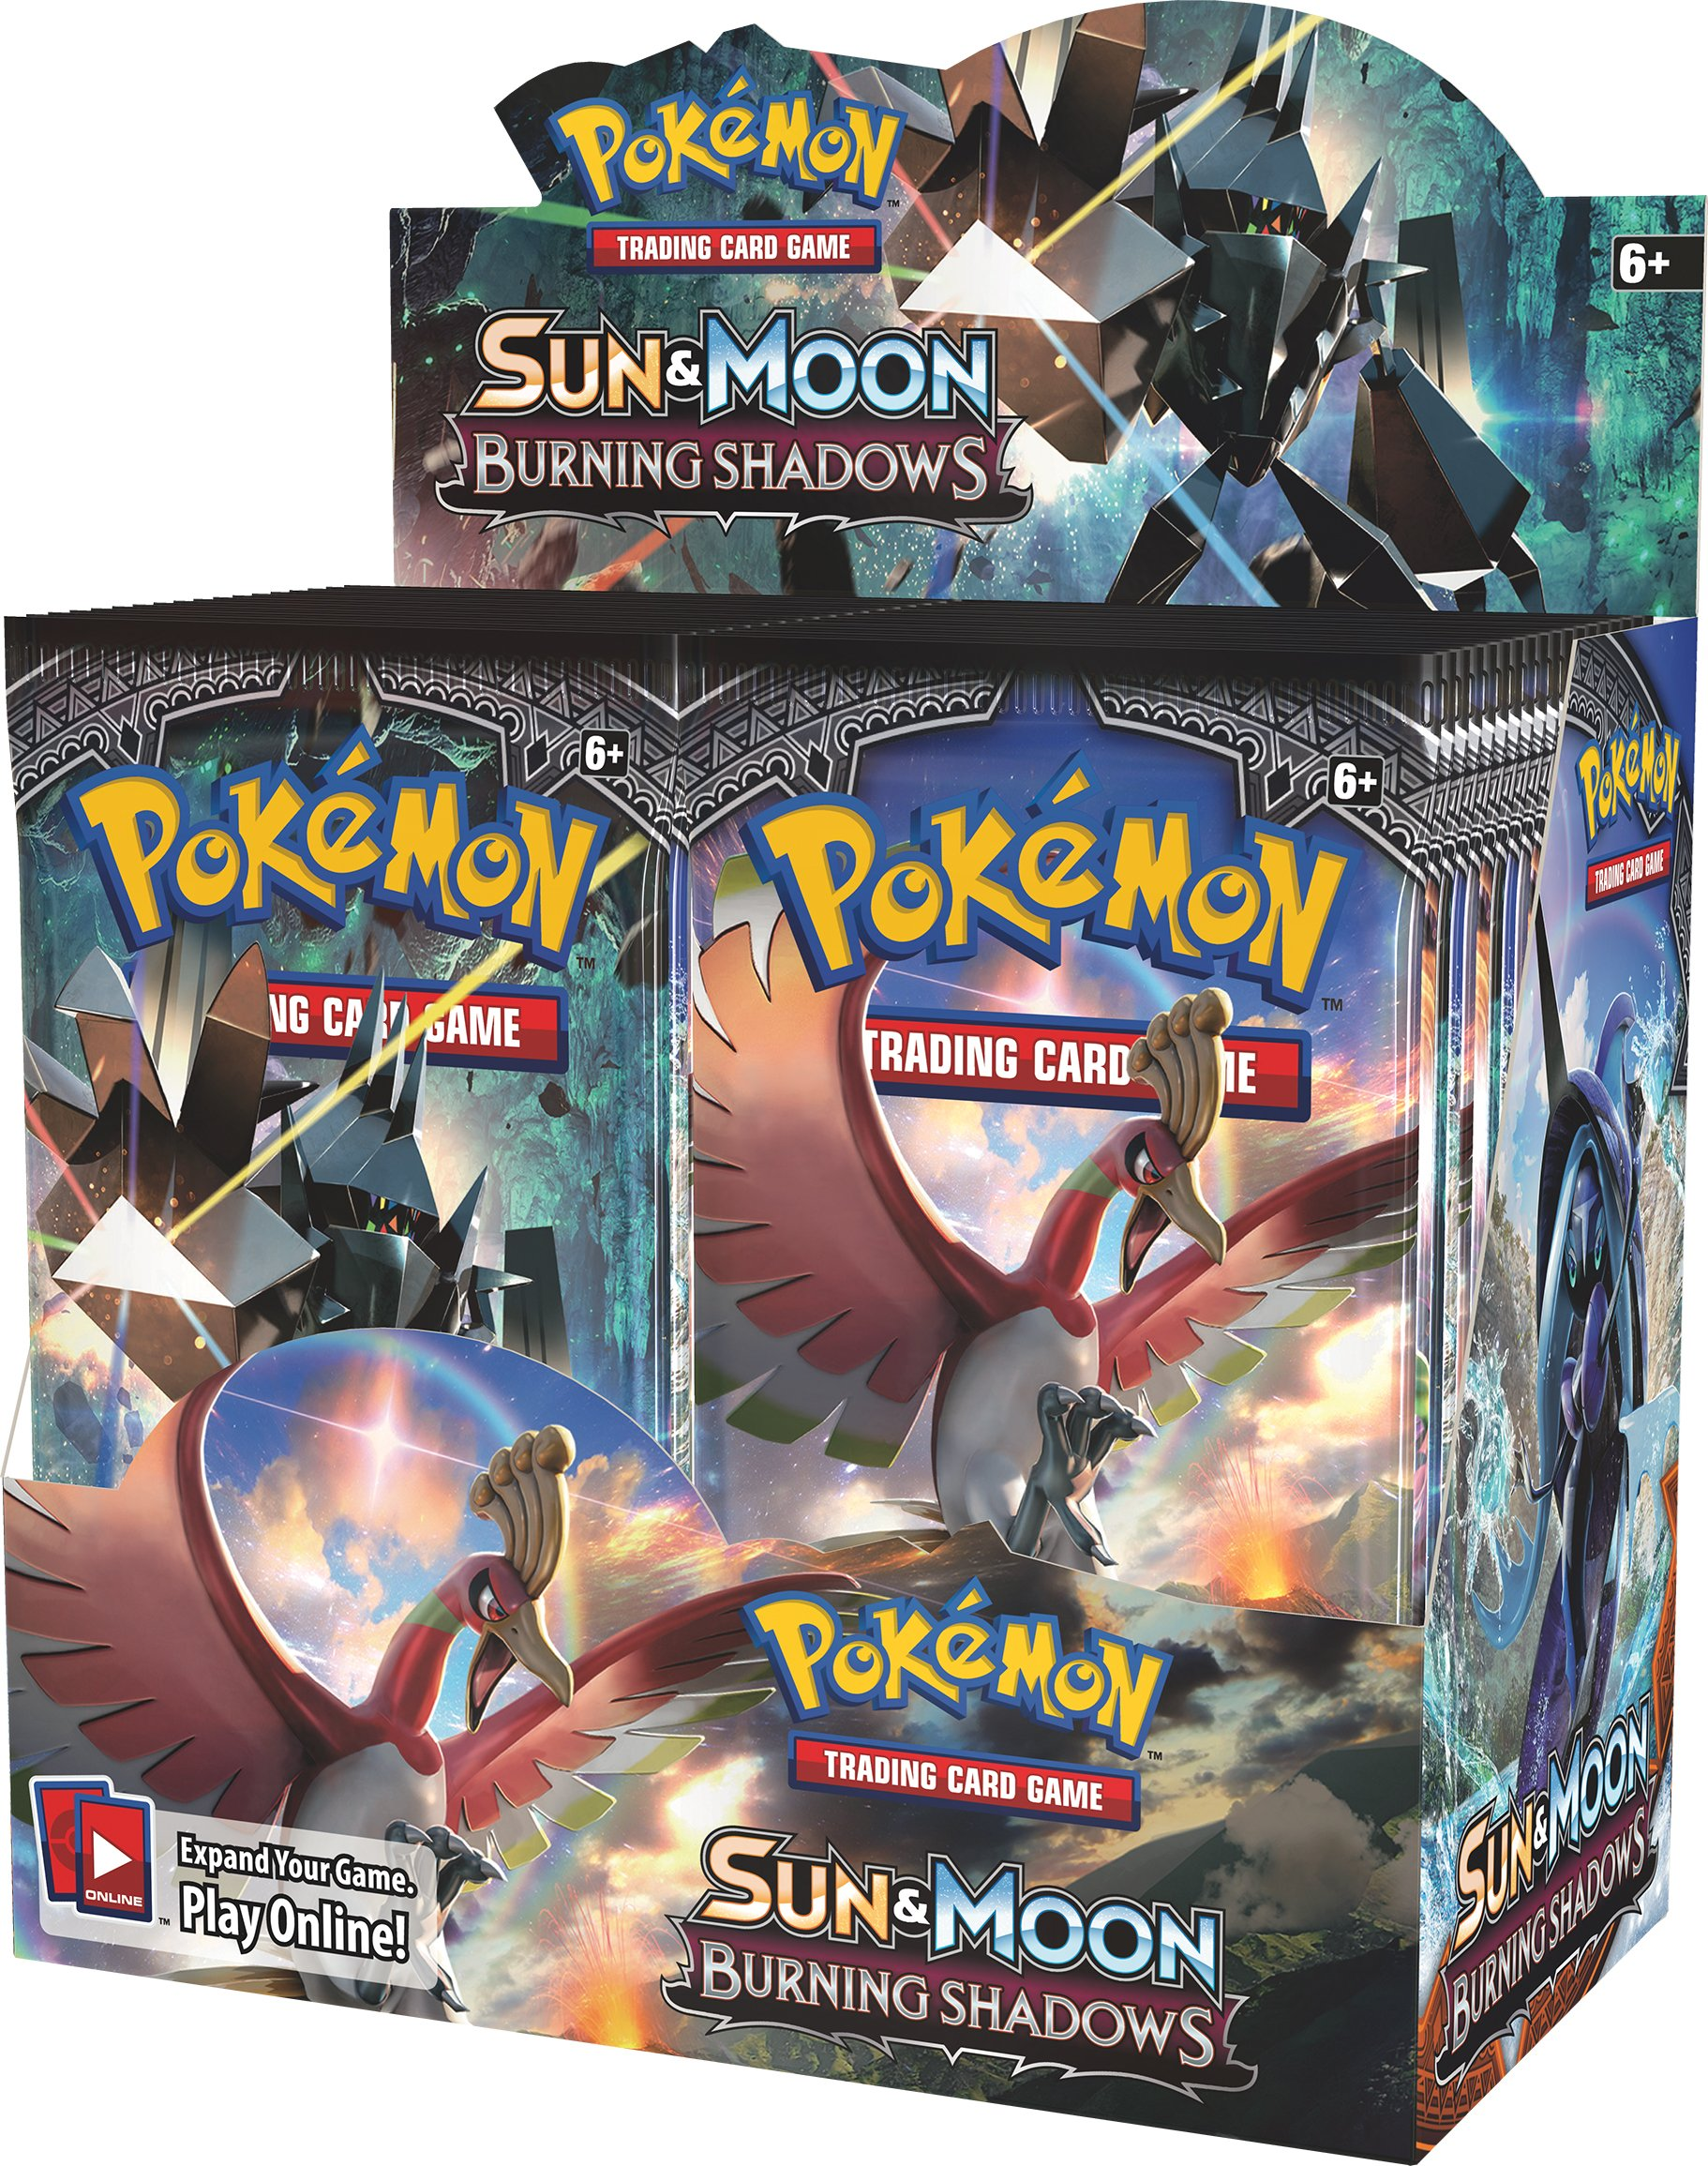 Pokemon TCG Sun & Moon Burning Shadows Booster Display Box Factory Sealed by Pokémon